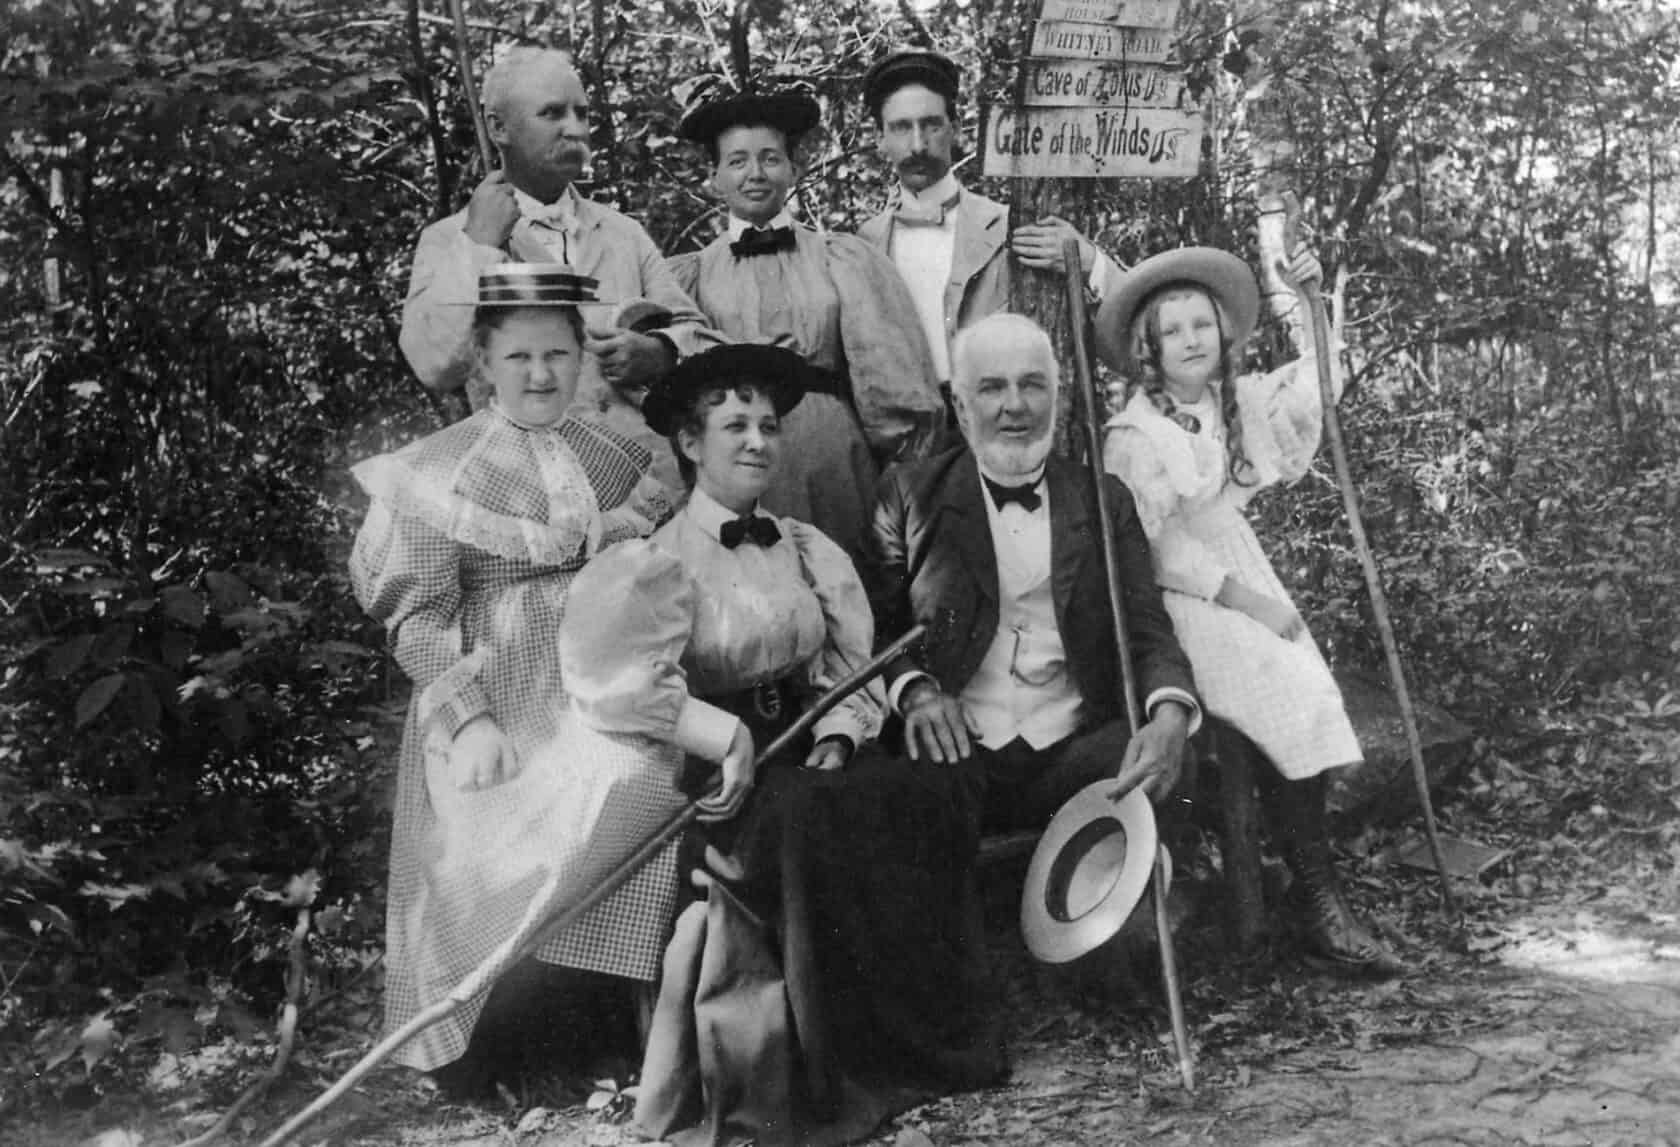 Albert Smiley leads a hike with guests, 1895